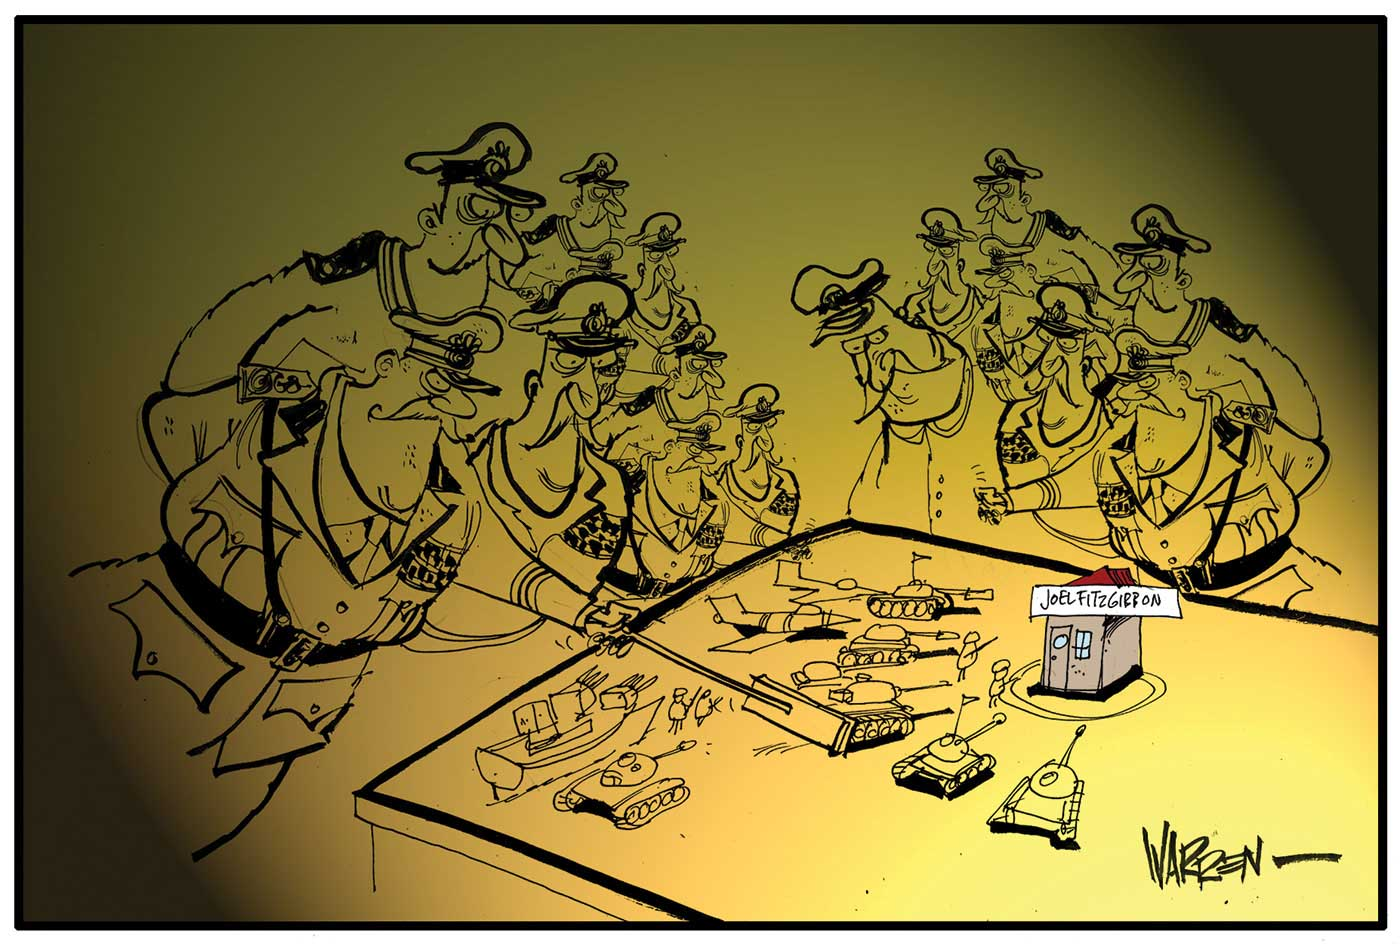 A colour cartoon depicting a group of high-ranking army officers gathered around a table. On the table are model tanks, aircraft and a gunboat, all arranged around a building marked 'Joel Fitzgibbon'. The officer in the foreground is pushing a tank forward with a pointer.  - click to view larger image